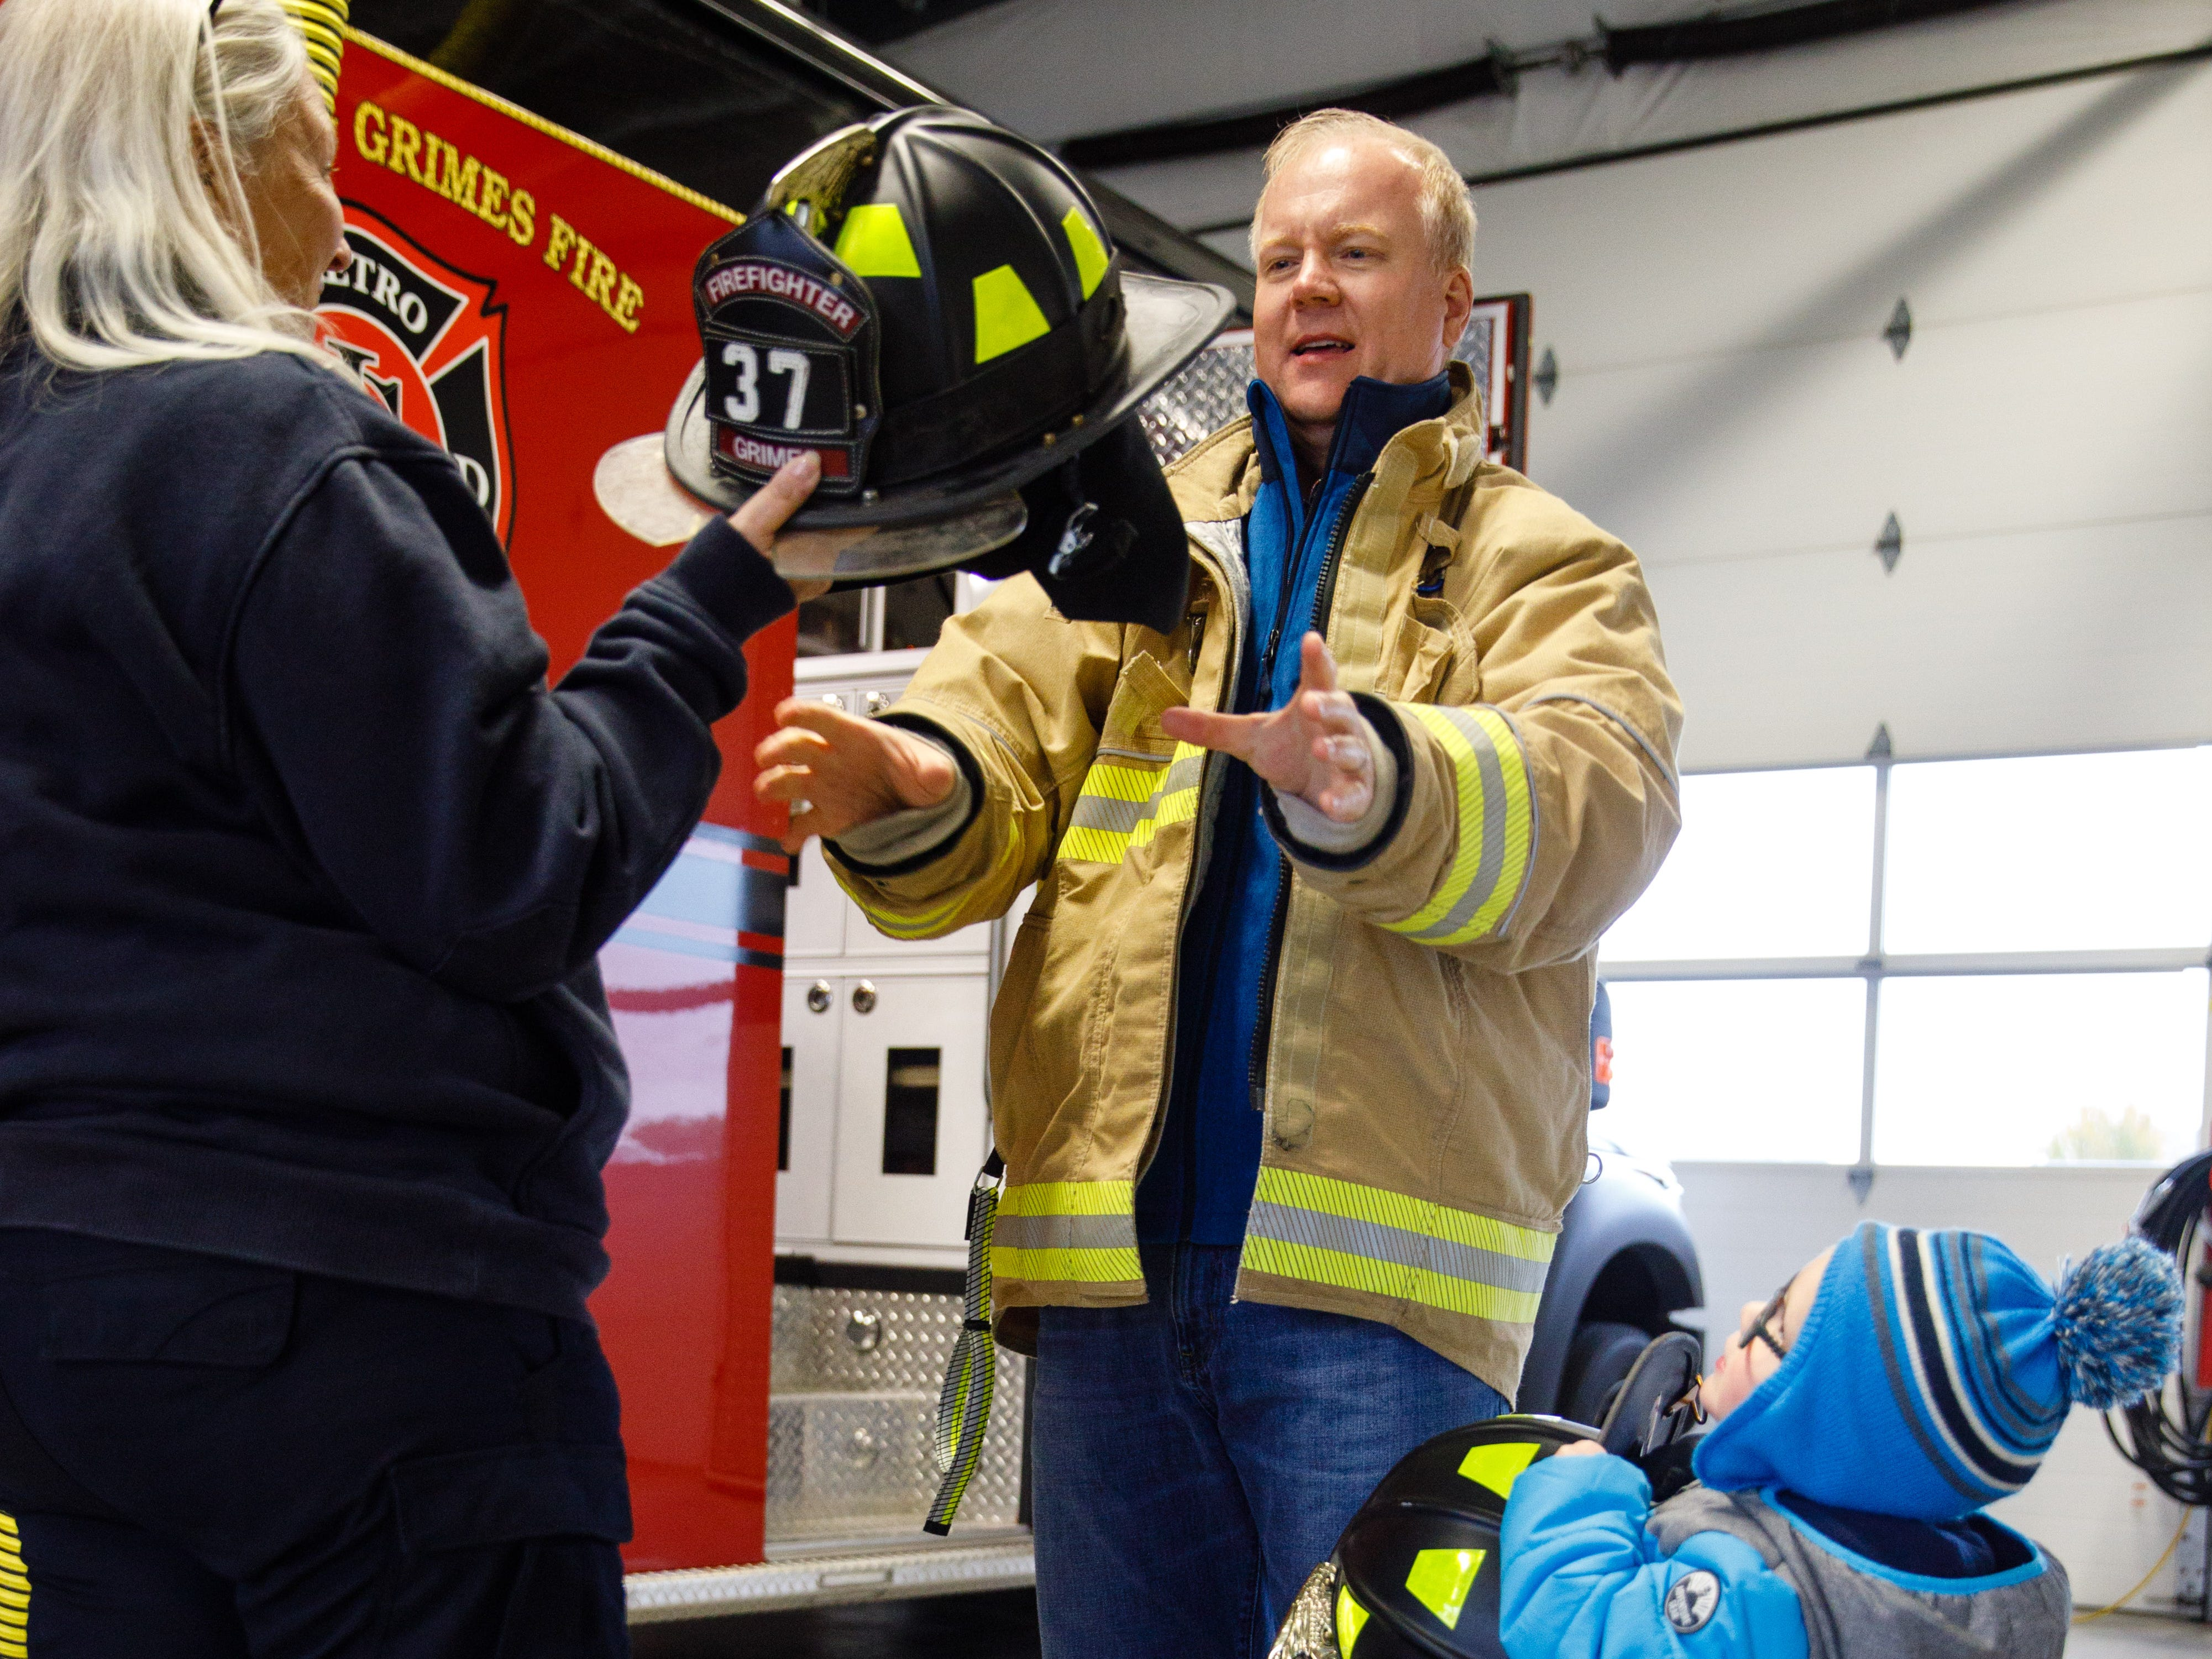 Jason Lems of Johnston tries on firefighting protective equipment with the help of Braxton Lems, 3, and EMT/Firefighter Gail Thompson Wednesday, Oct. 10, 2018, during the Johnston-Grimes Metropolitan Fire Department's annual Fire Prevention Week Open House at the 62nd Avenue Fire Station in Johnston.